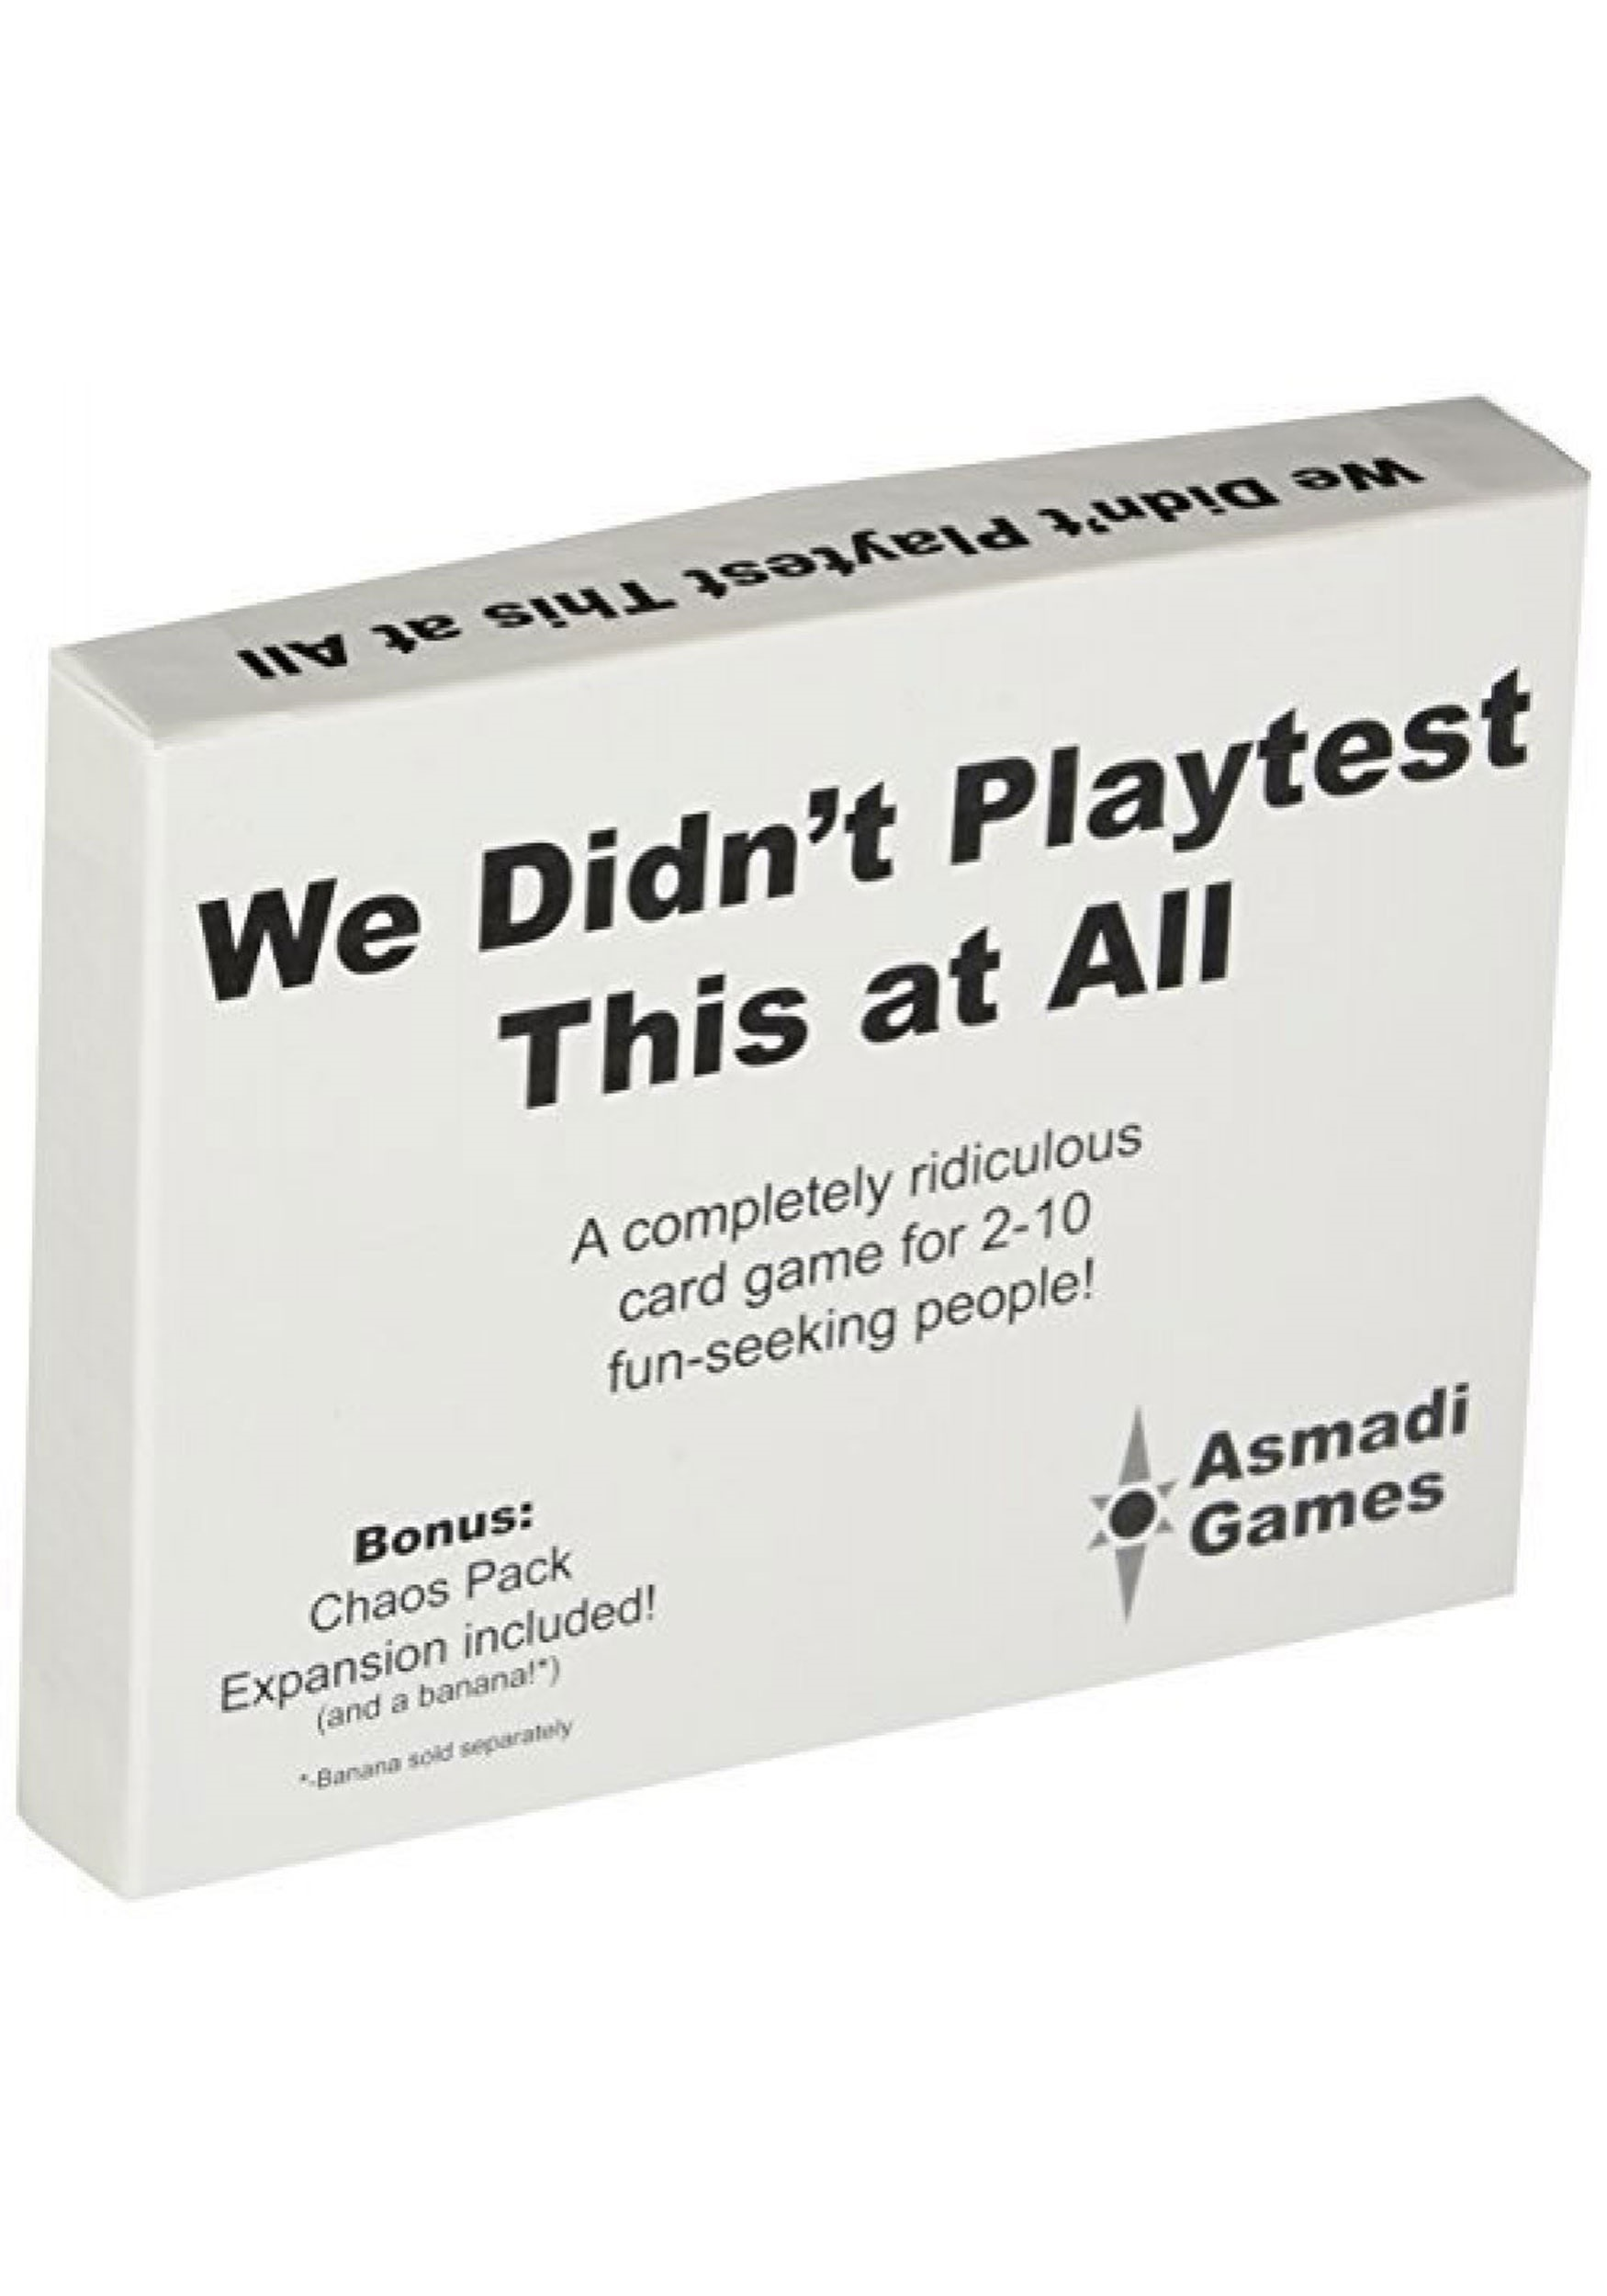 We_Didn't_Playtest_This_at_All_Card_Game